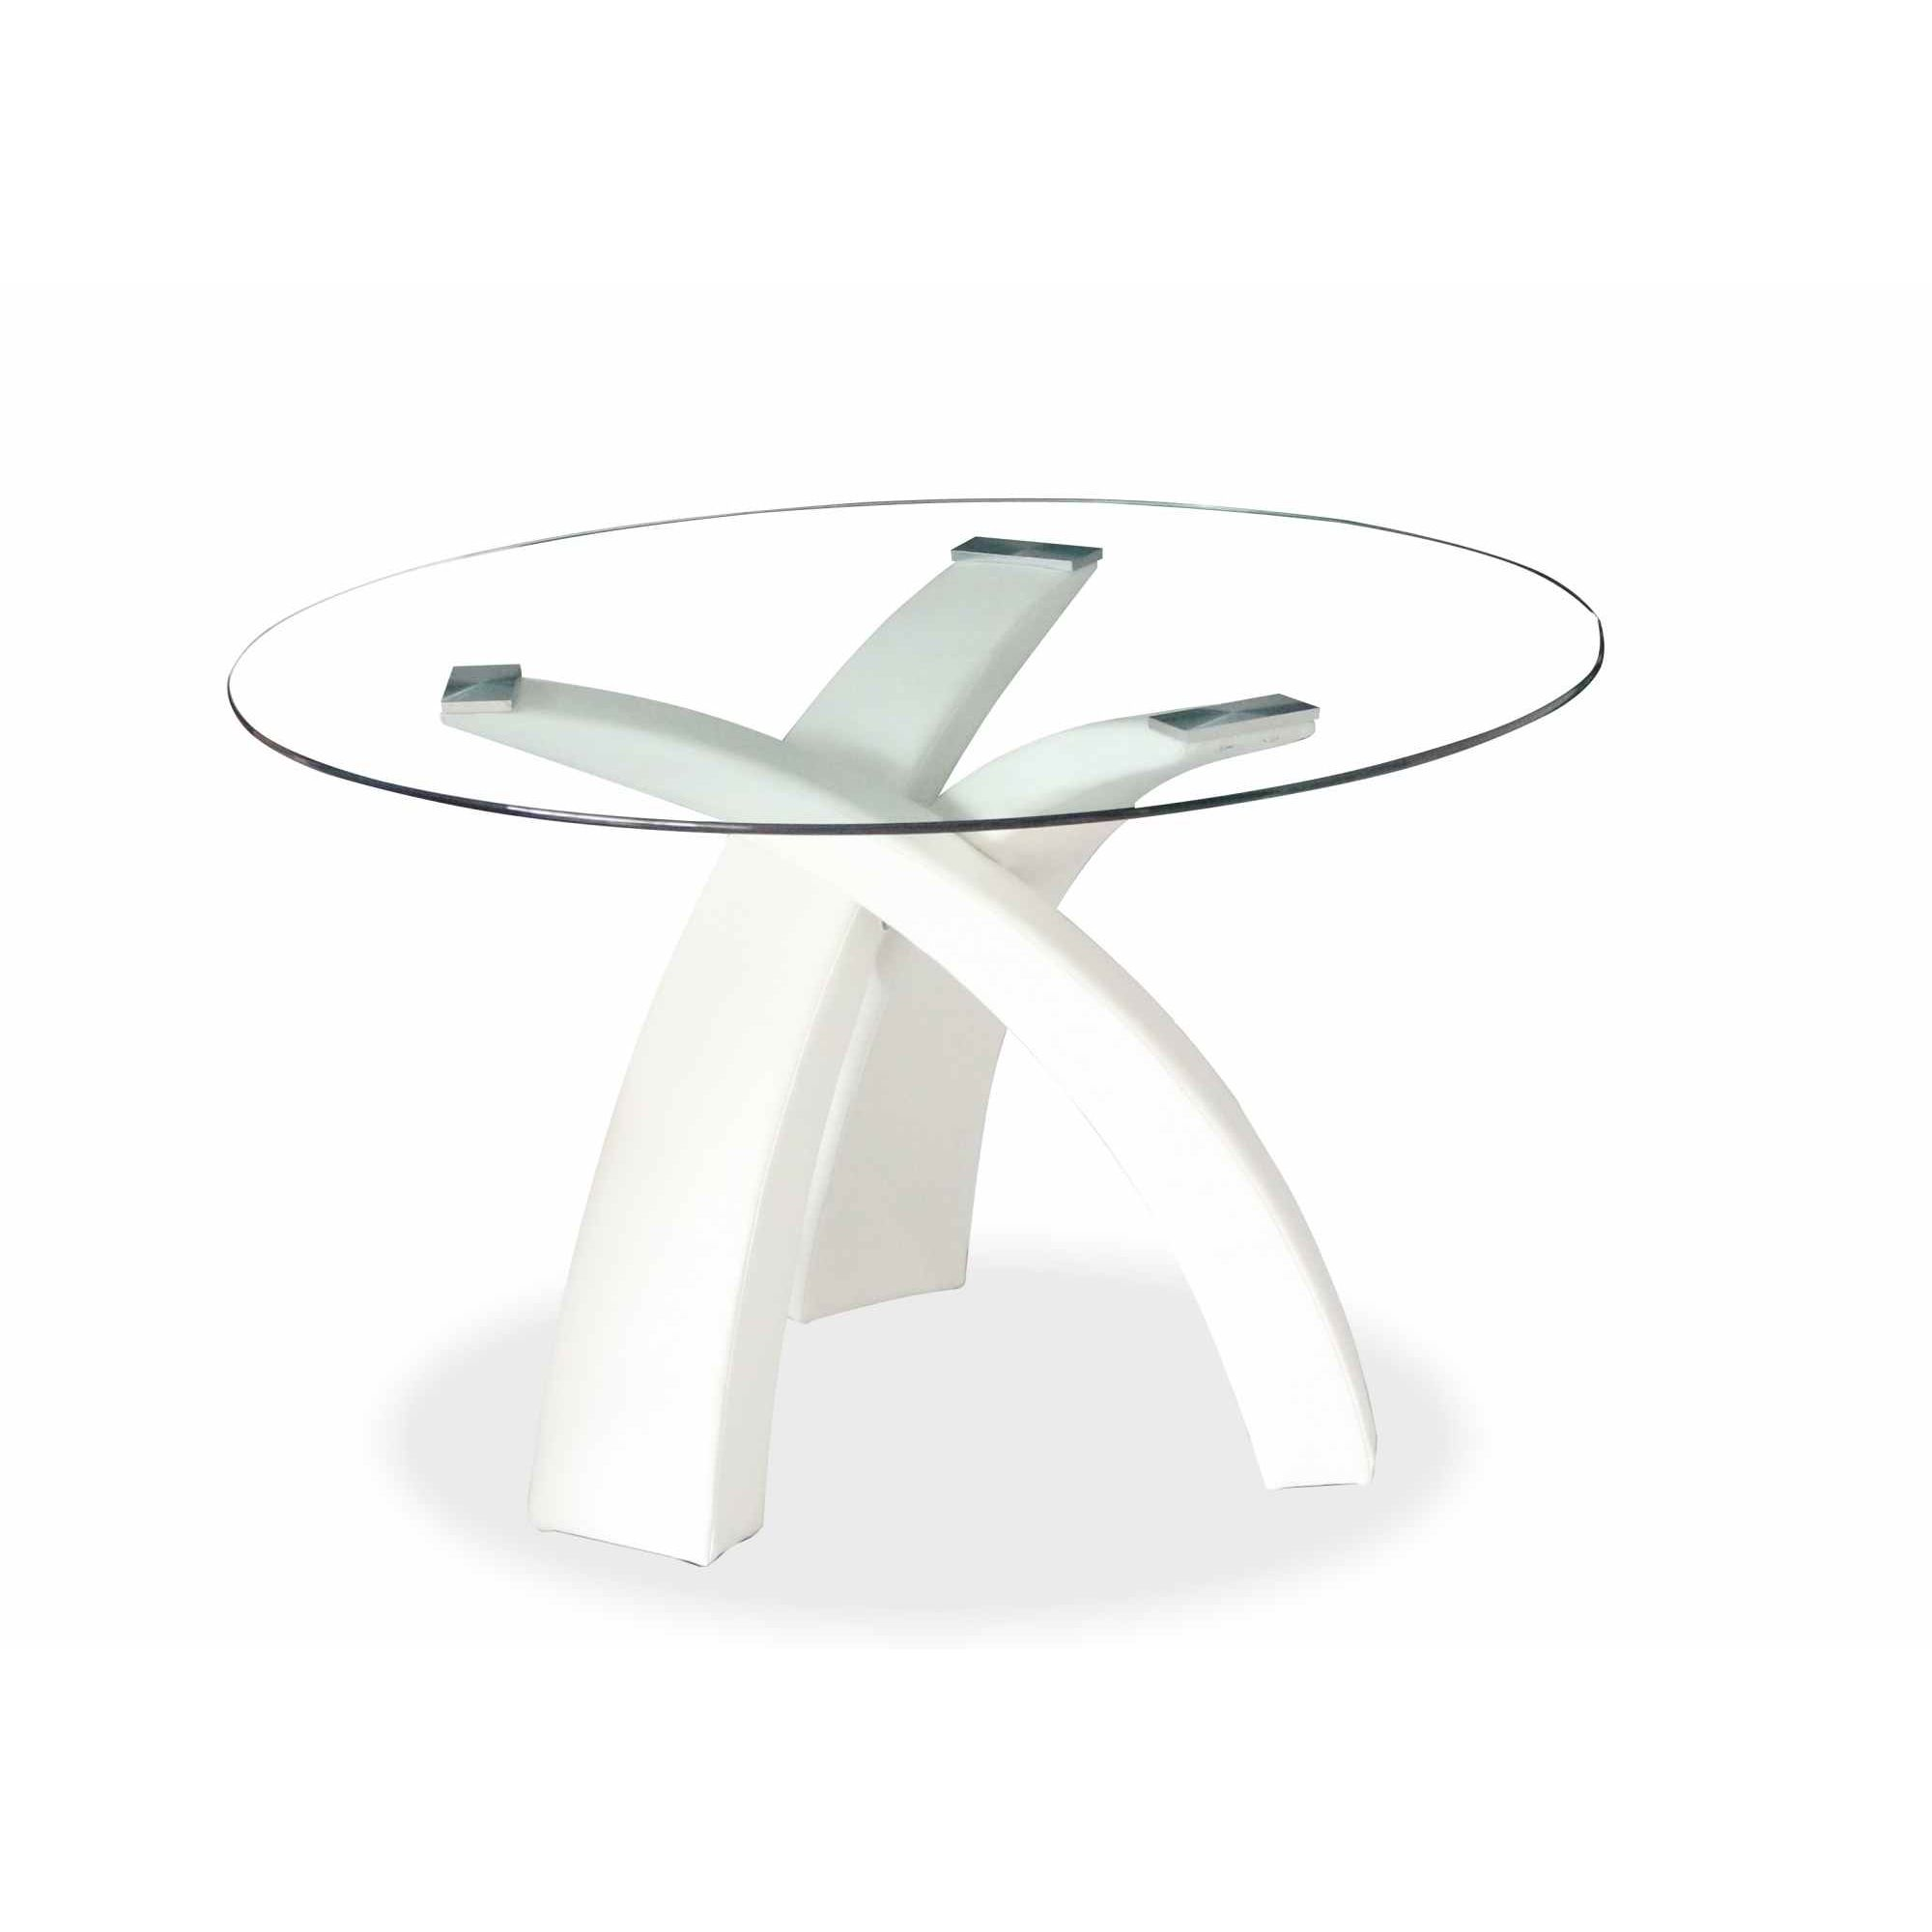 Deco in paris 6 table a manger ronde blanche gore gore blanc table - Table ronde a manger ...